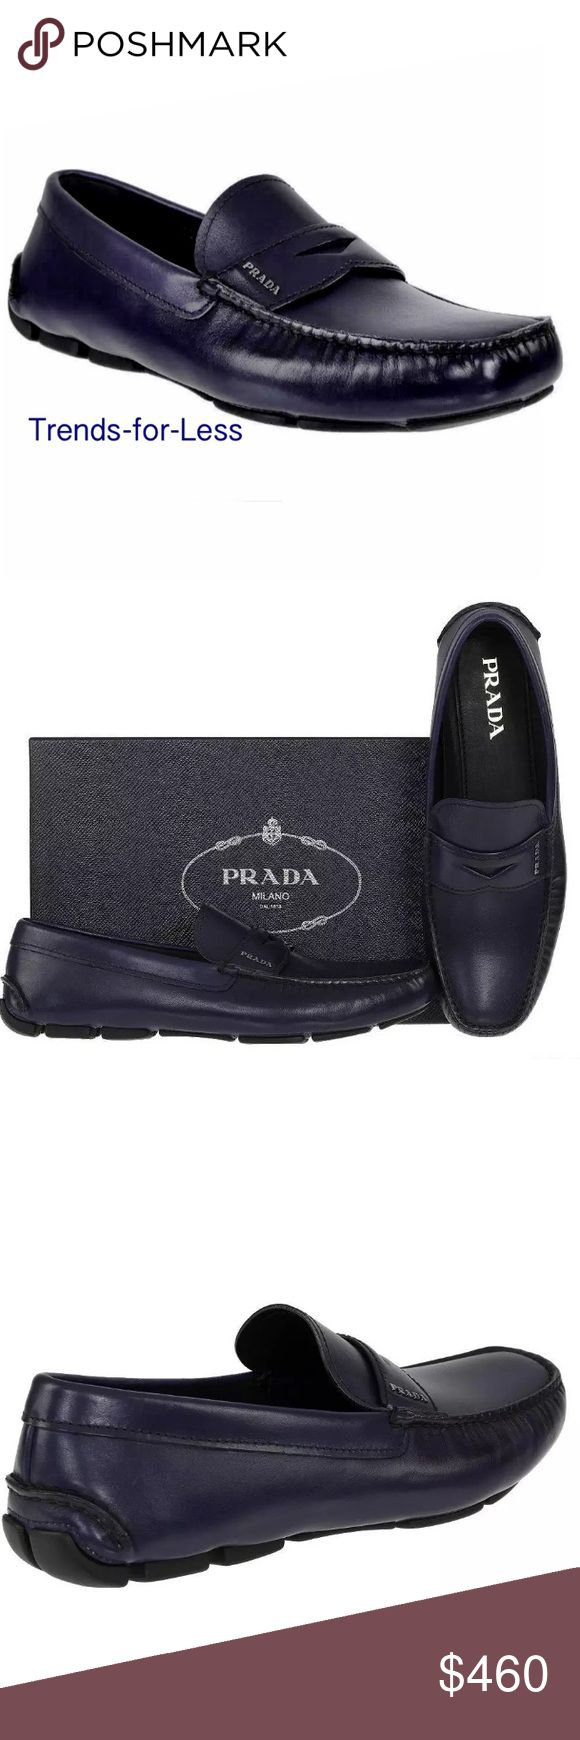 NIB Prada men's casual moccasins size 7 NEW WITH BOX AND DUST BAGS PRADA MILANO MEN'S CASUAL MOCCASINS.  MADE IN ITALY. 100% AUTHENTICITY GUARANTEED. LUXURY QUALITY INCHIOSTRO(INK) BLUE COLOR  100% LEATHER SHOES, SILVER TONE METAL PRADA LOGO LETTERING.  COMFORTABLE BLACK RUBBER SOLE.  SIZE PRADA 7.  Comparable to a US size 8 Prada Shoes Moccasins